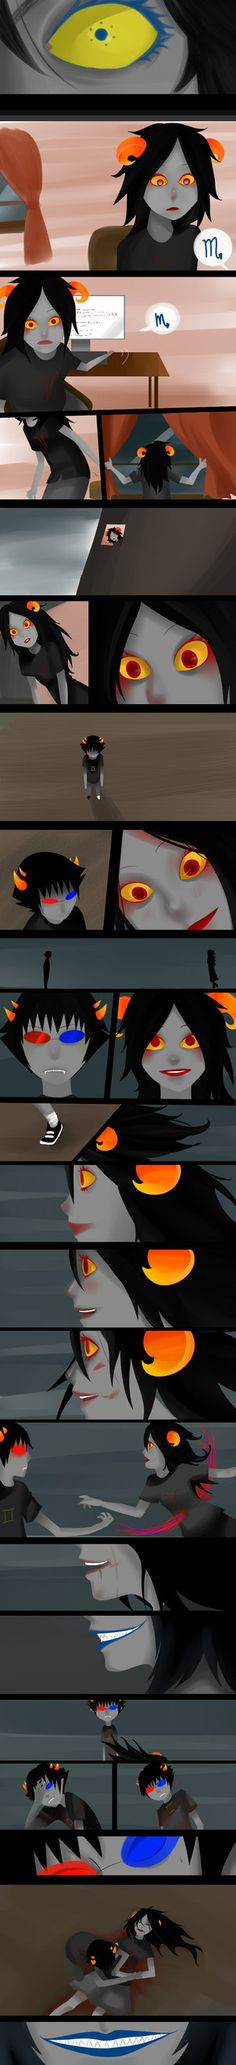 Vriska: ruin them by frillium on deviantART